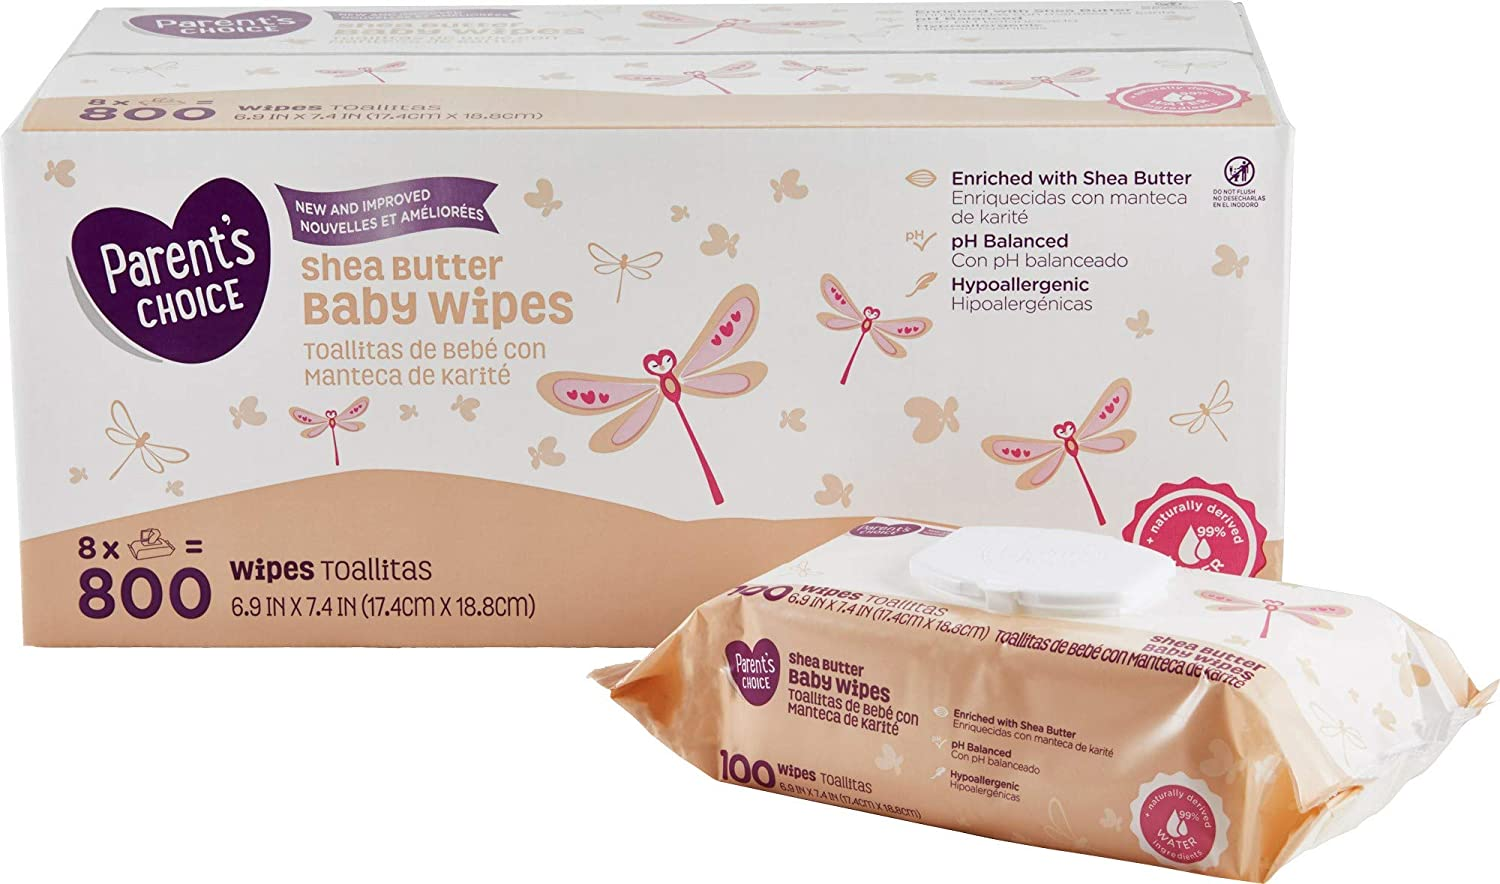 Amazon.com : Parents Choice Shea Butter Baby Wipes, 3 Packs of 80 (240 Count) : Baby